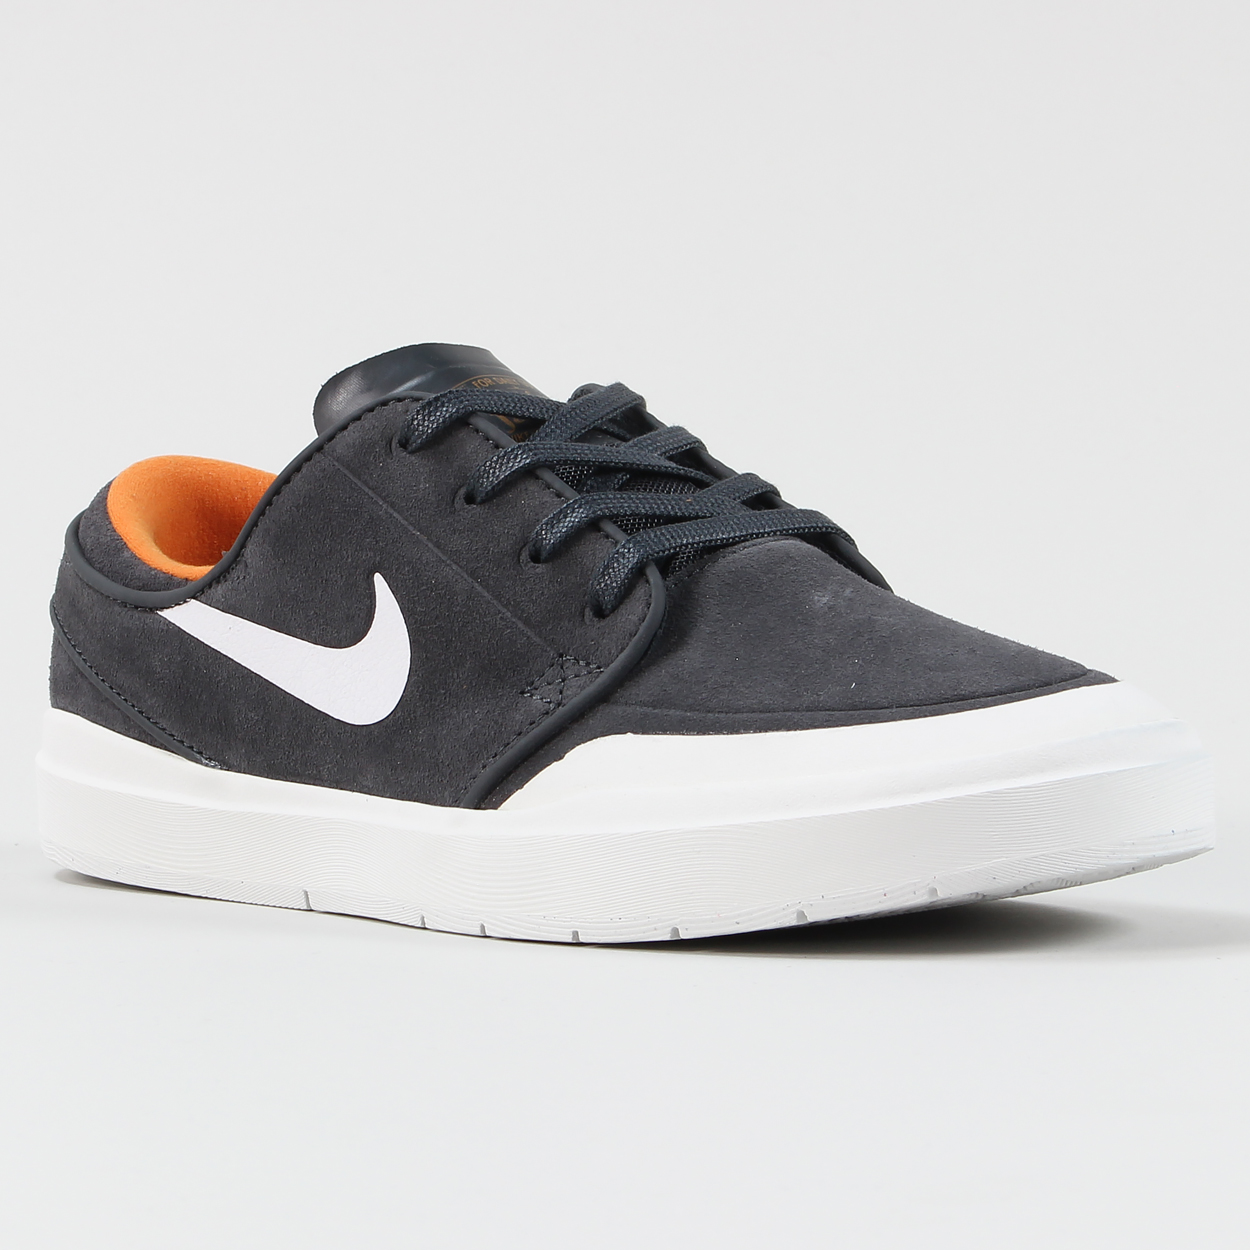 27339e07174 The awesome looking Janoski Hyperfeel gets an extra tough construction  which features premium suede uppers